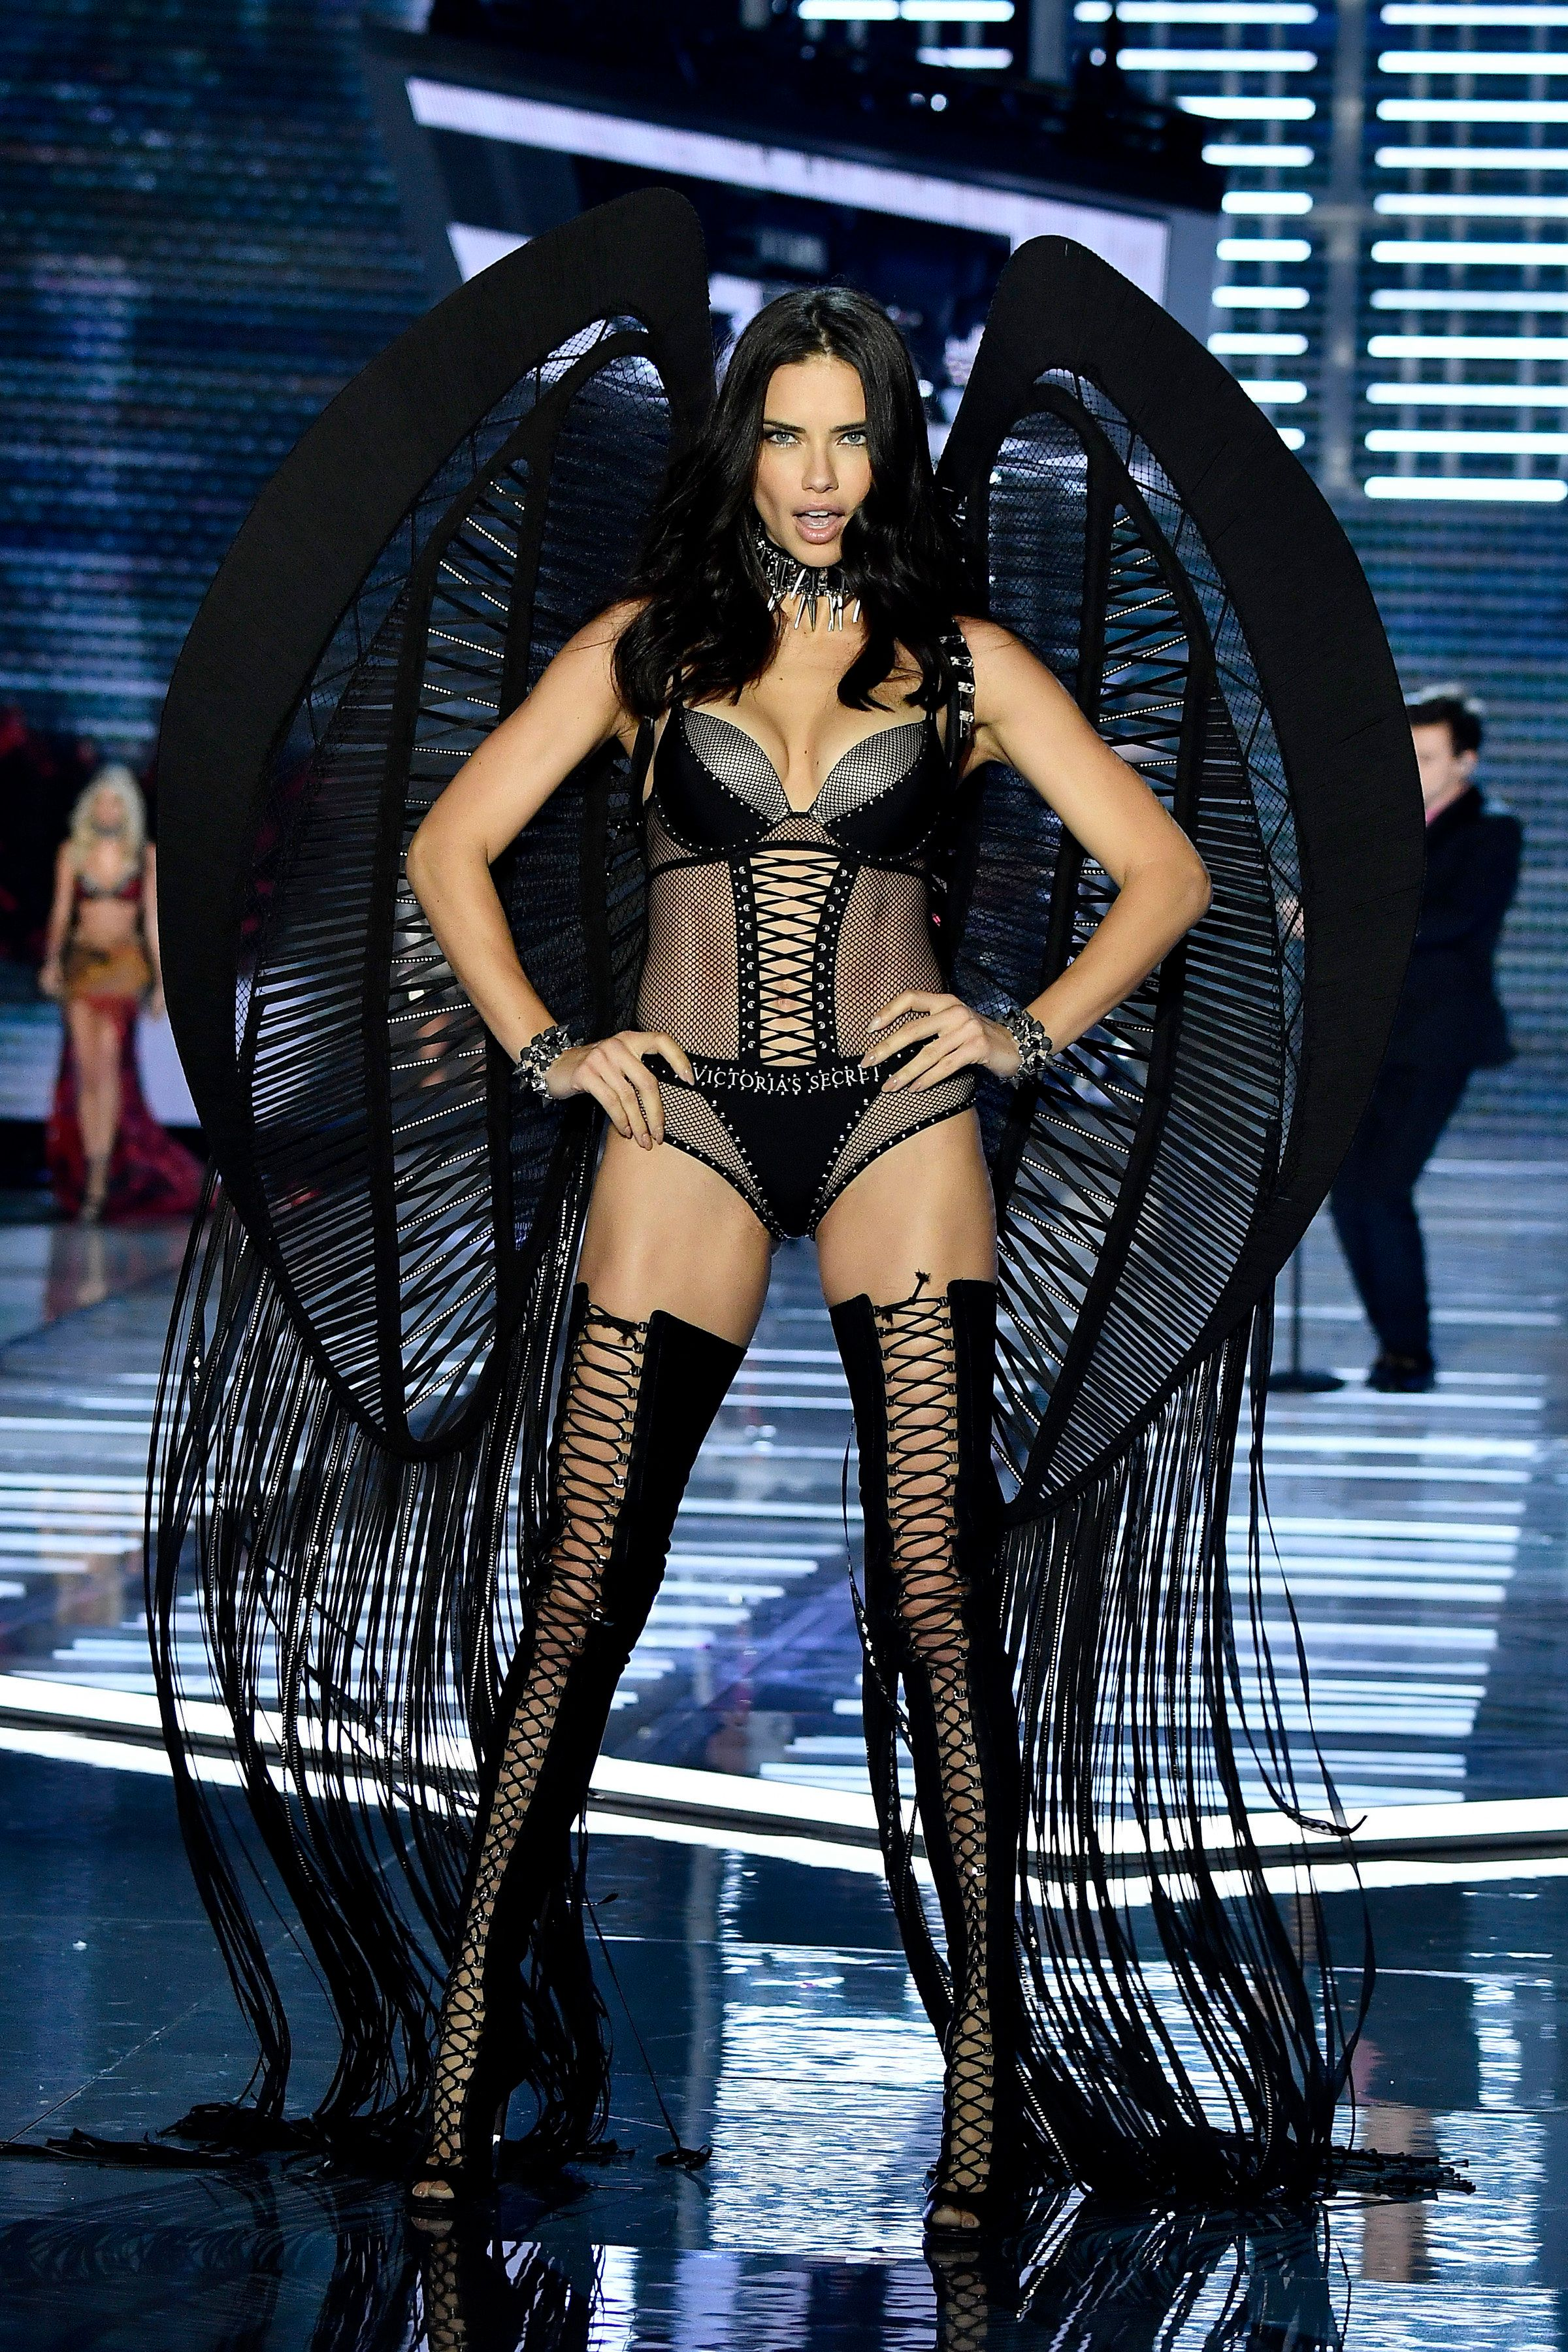 The Victoria's Secret Shanghai Show Photos Have Landed And The Costumes Are